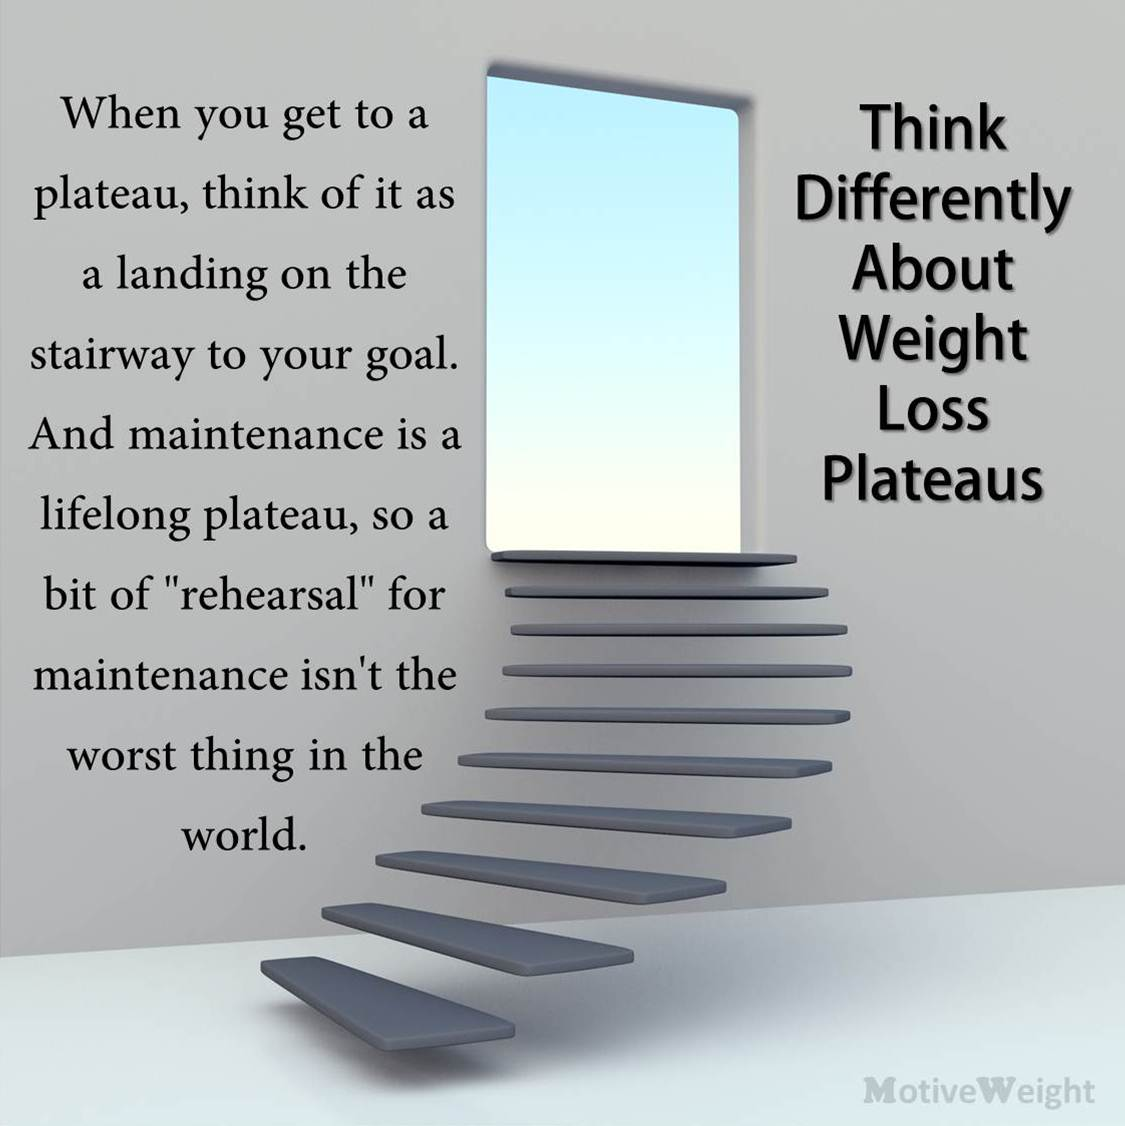 MotiveWeight: Think Differently About Weight Loss Plateaus